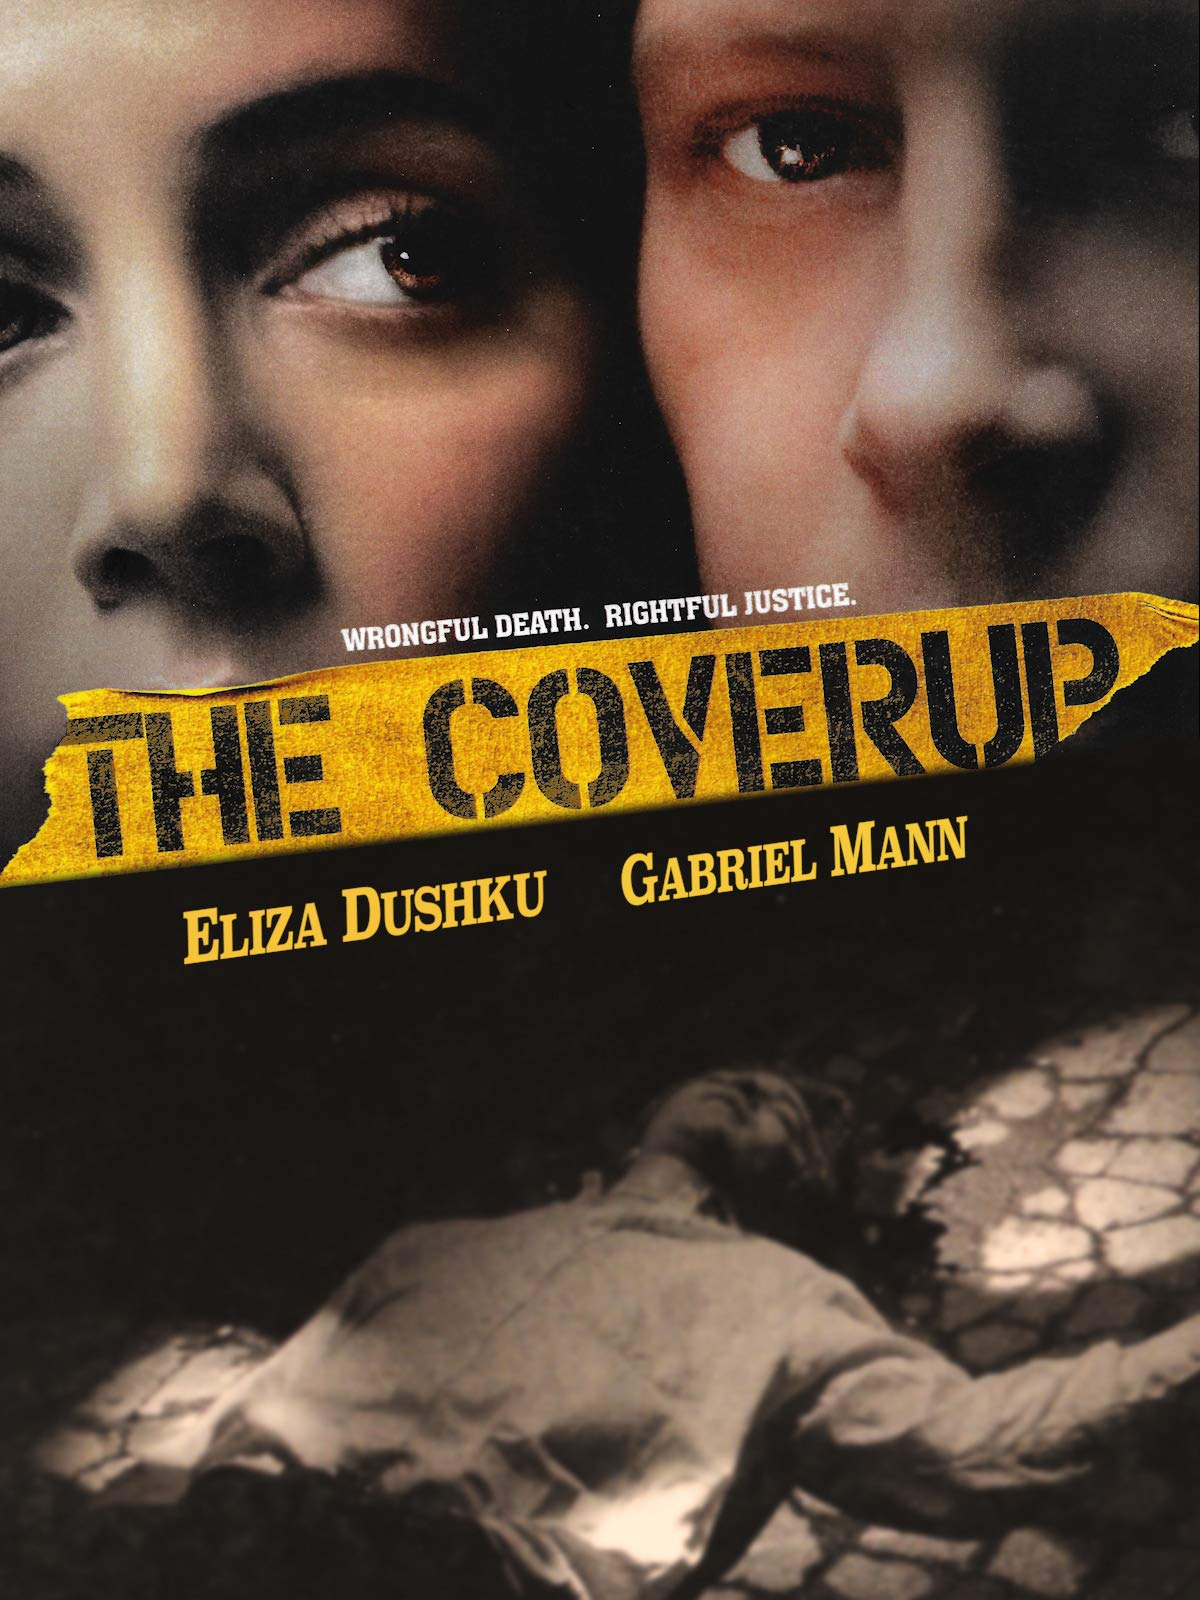 Watch The Coverup Prime Video